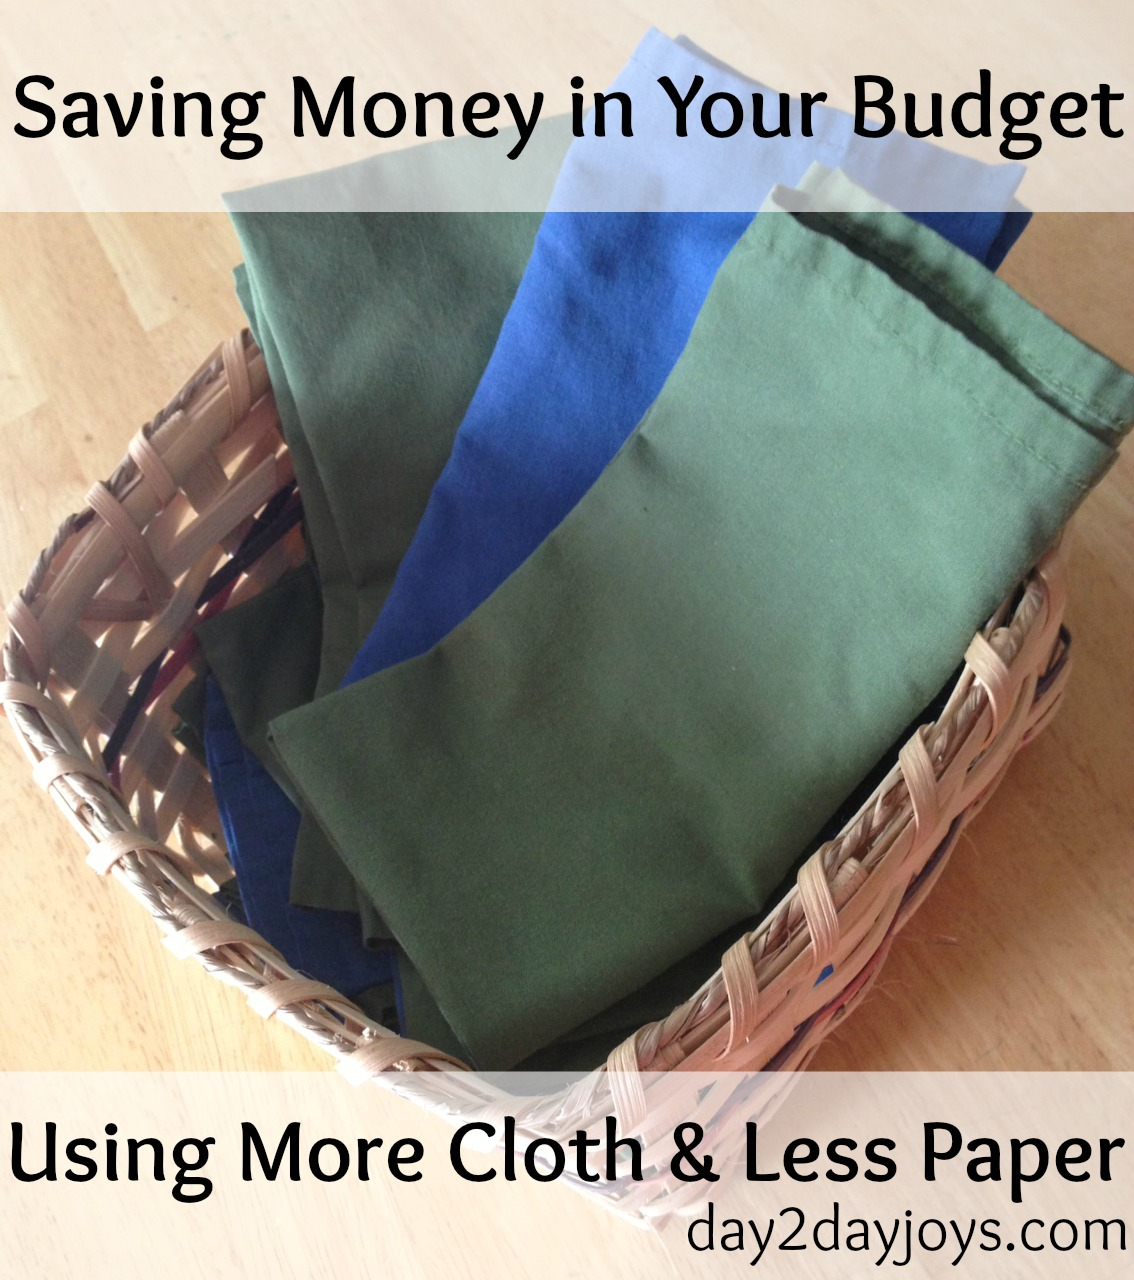 Simple ways that you can save money in your budget by using more cloth and fewer paper products in the home